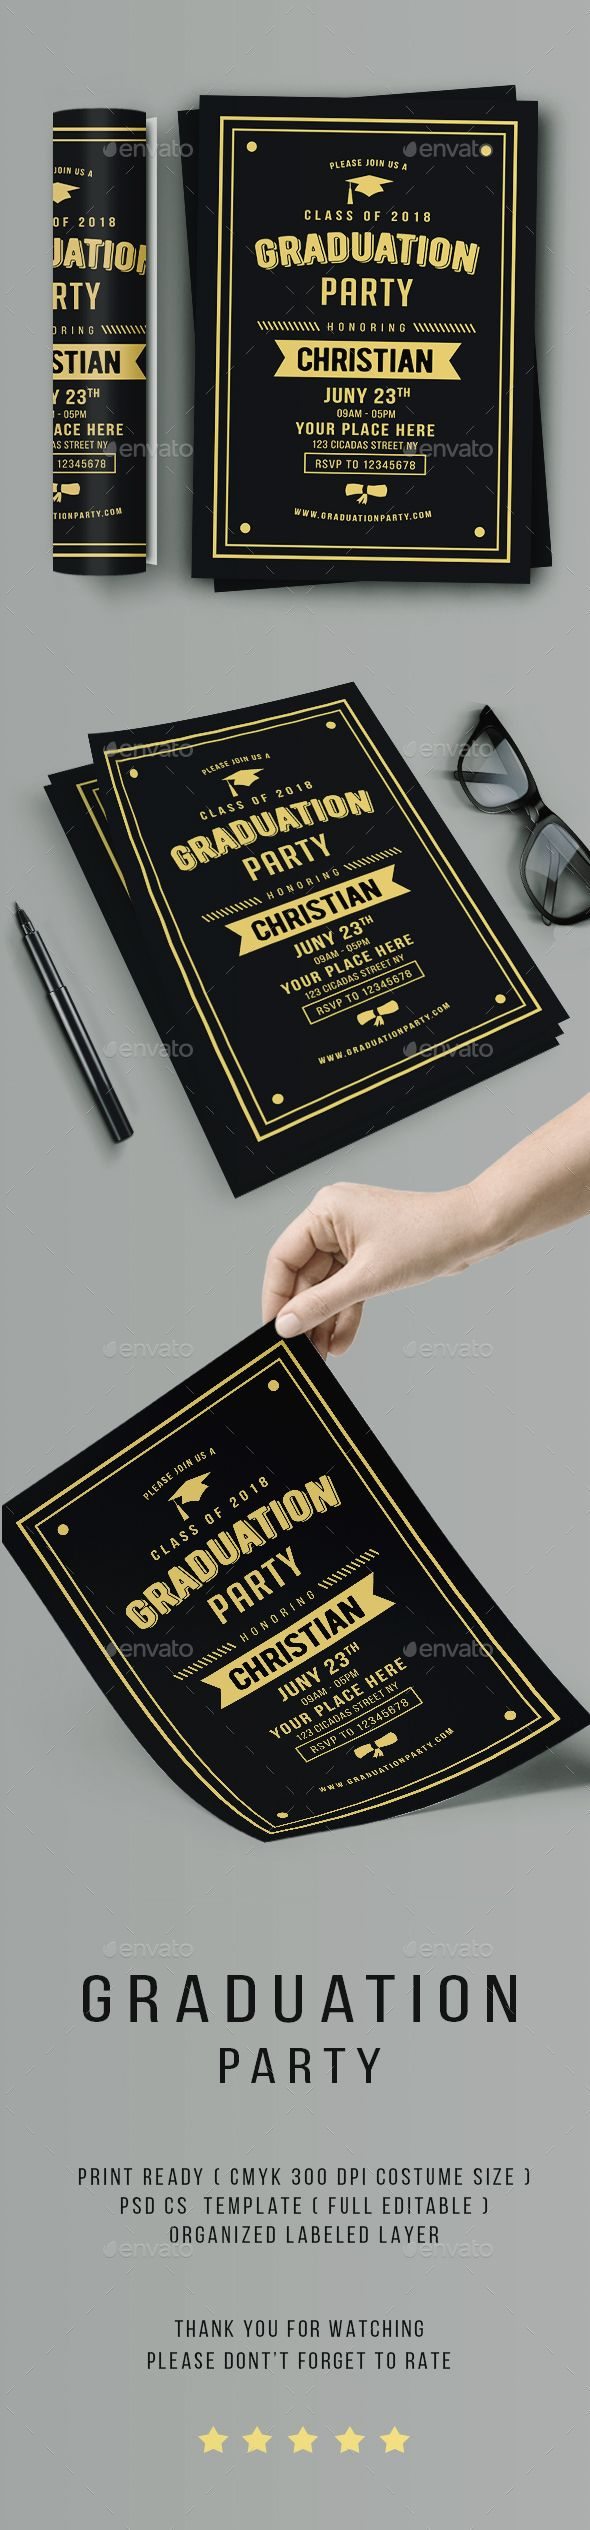 144 best Invitation Card Templates images on Pinterest | Card ...